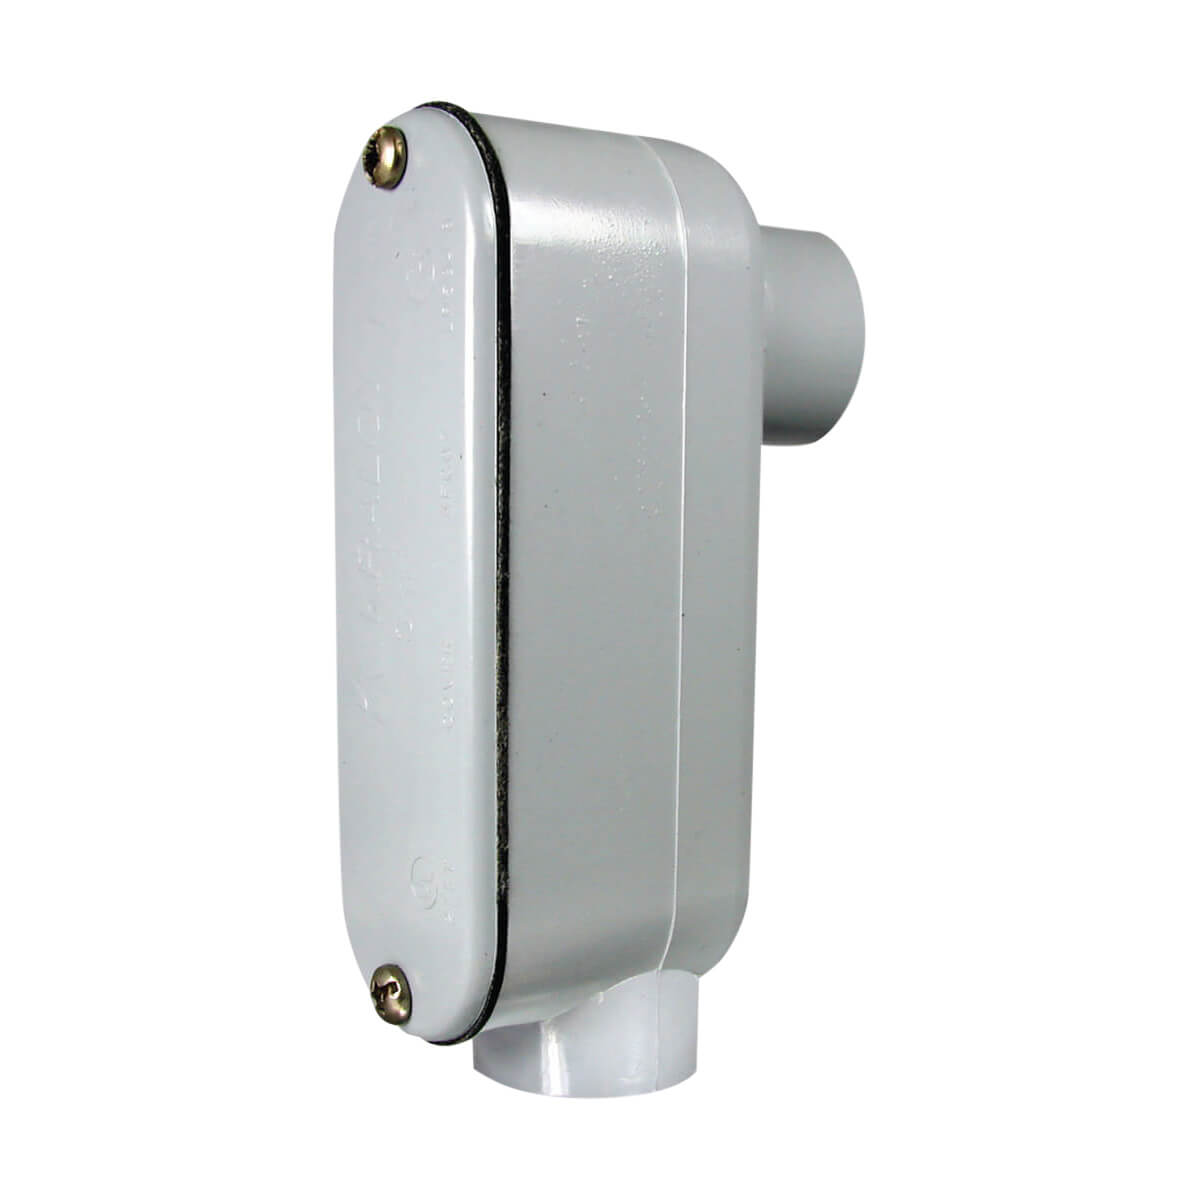 PVC Counduit Type 'LB' Access Fitting - Hub - 3/4-in